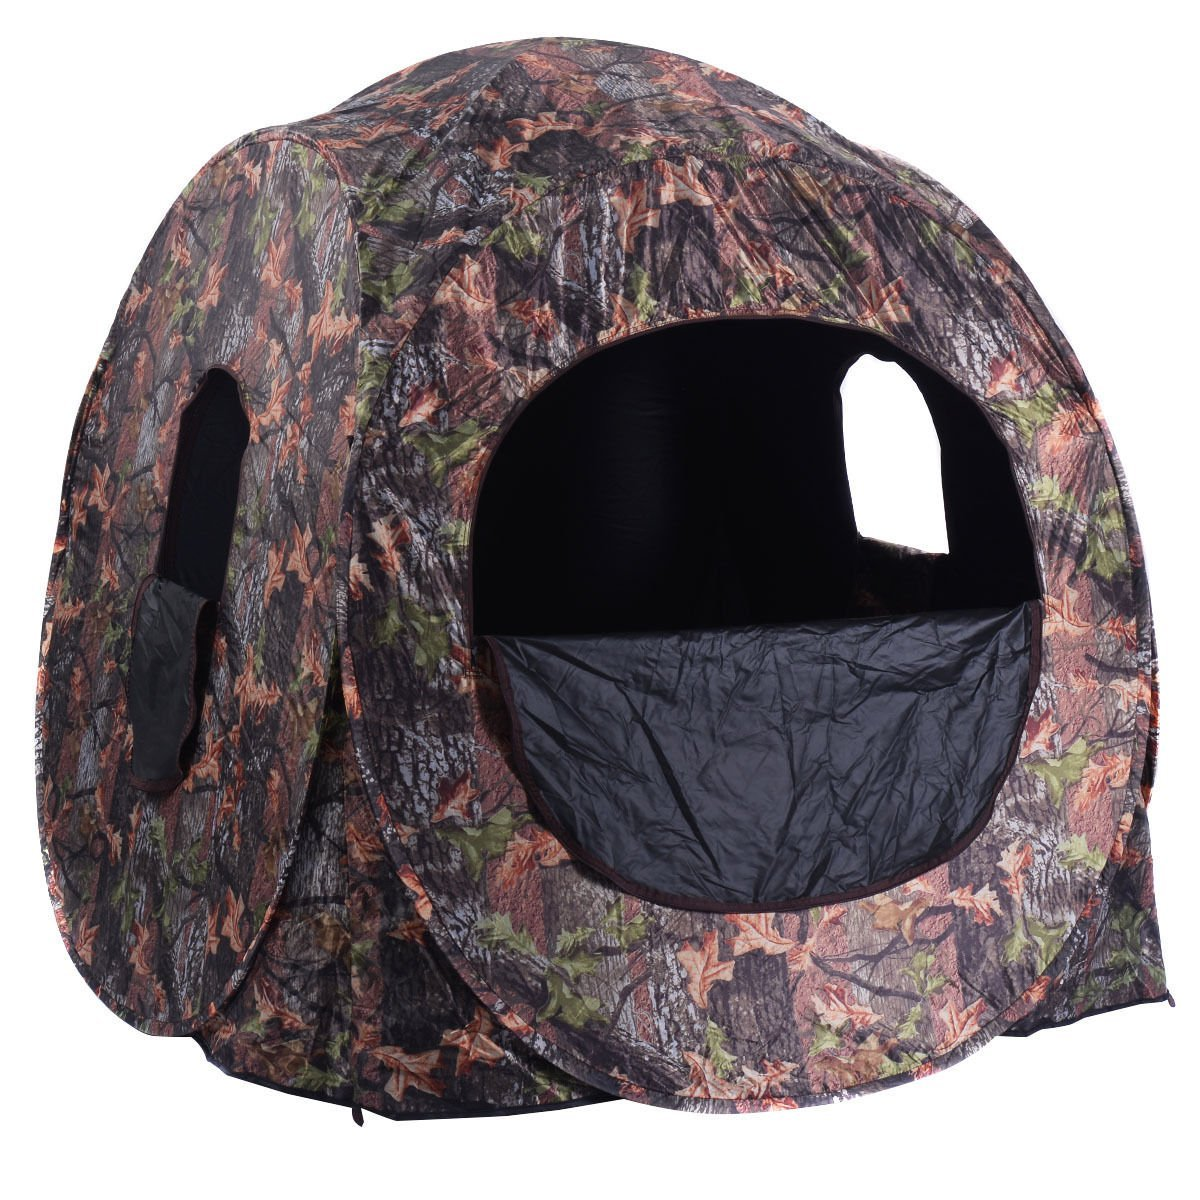 deer mesh up pop window camo proof tangkula blinds com ground sports portable outdoors weather hunting hunter amazon dp blind